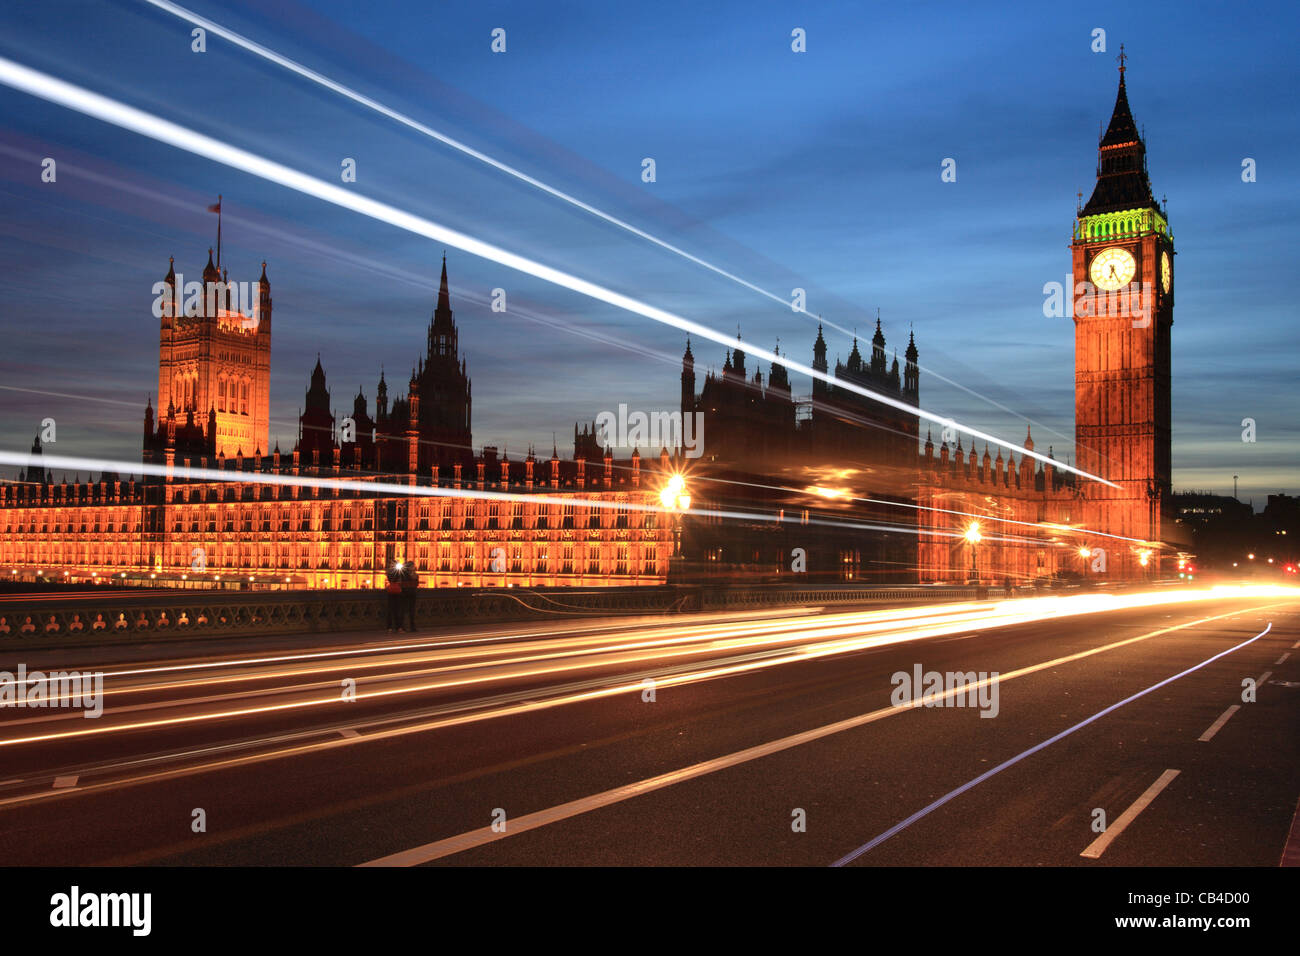 Westminster Bridge, traffic trails, Big Ben and the Houses of Parliament, London, England, UK - Stock Image